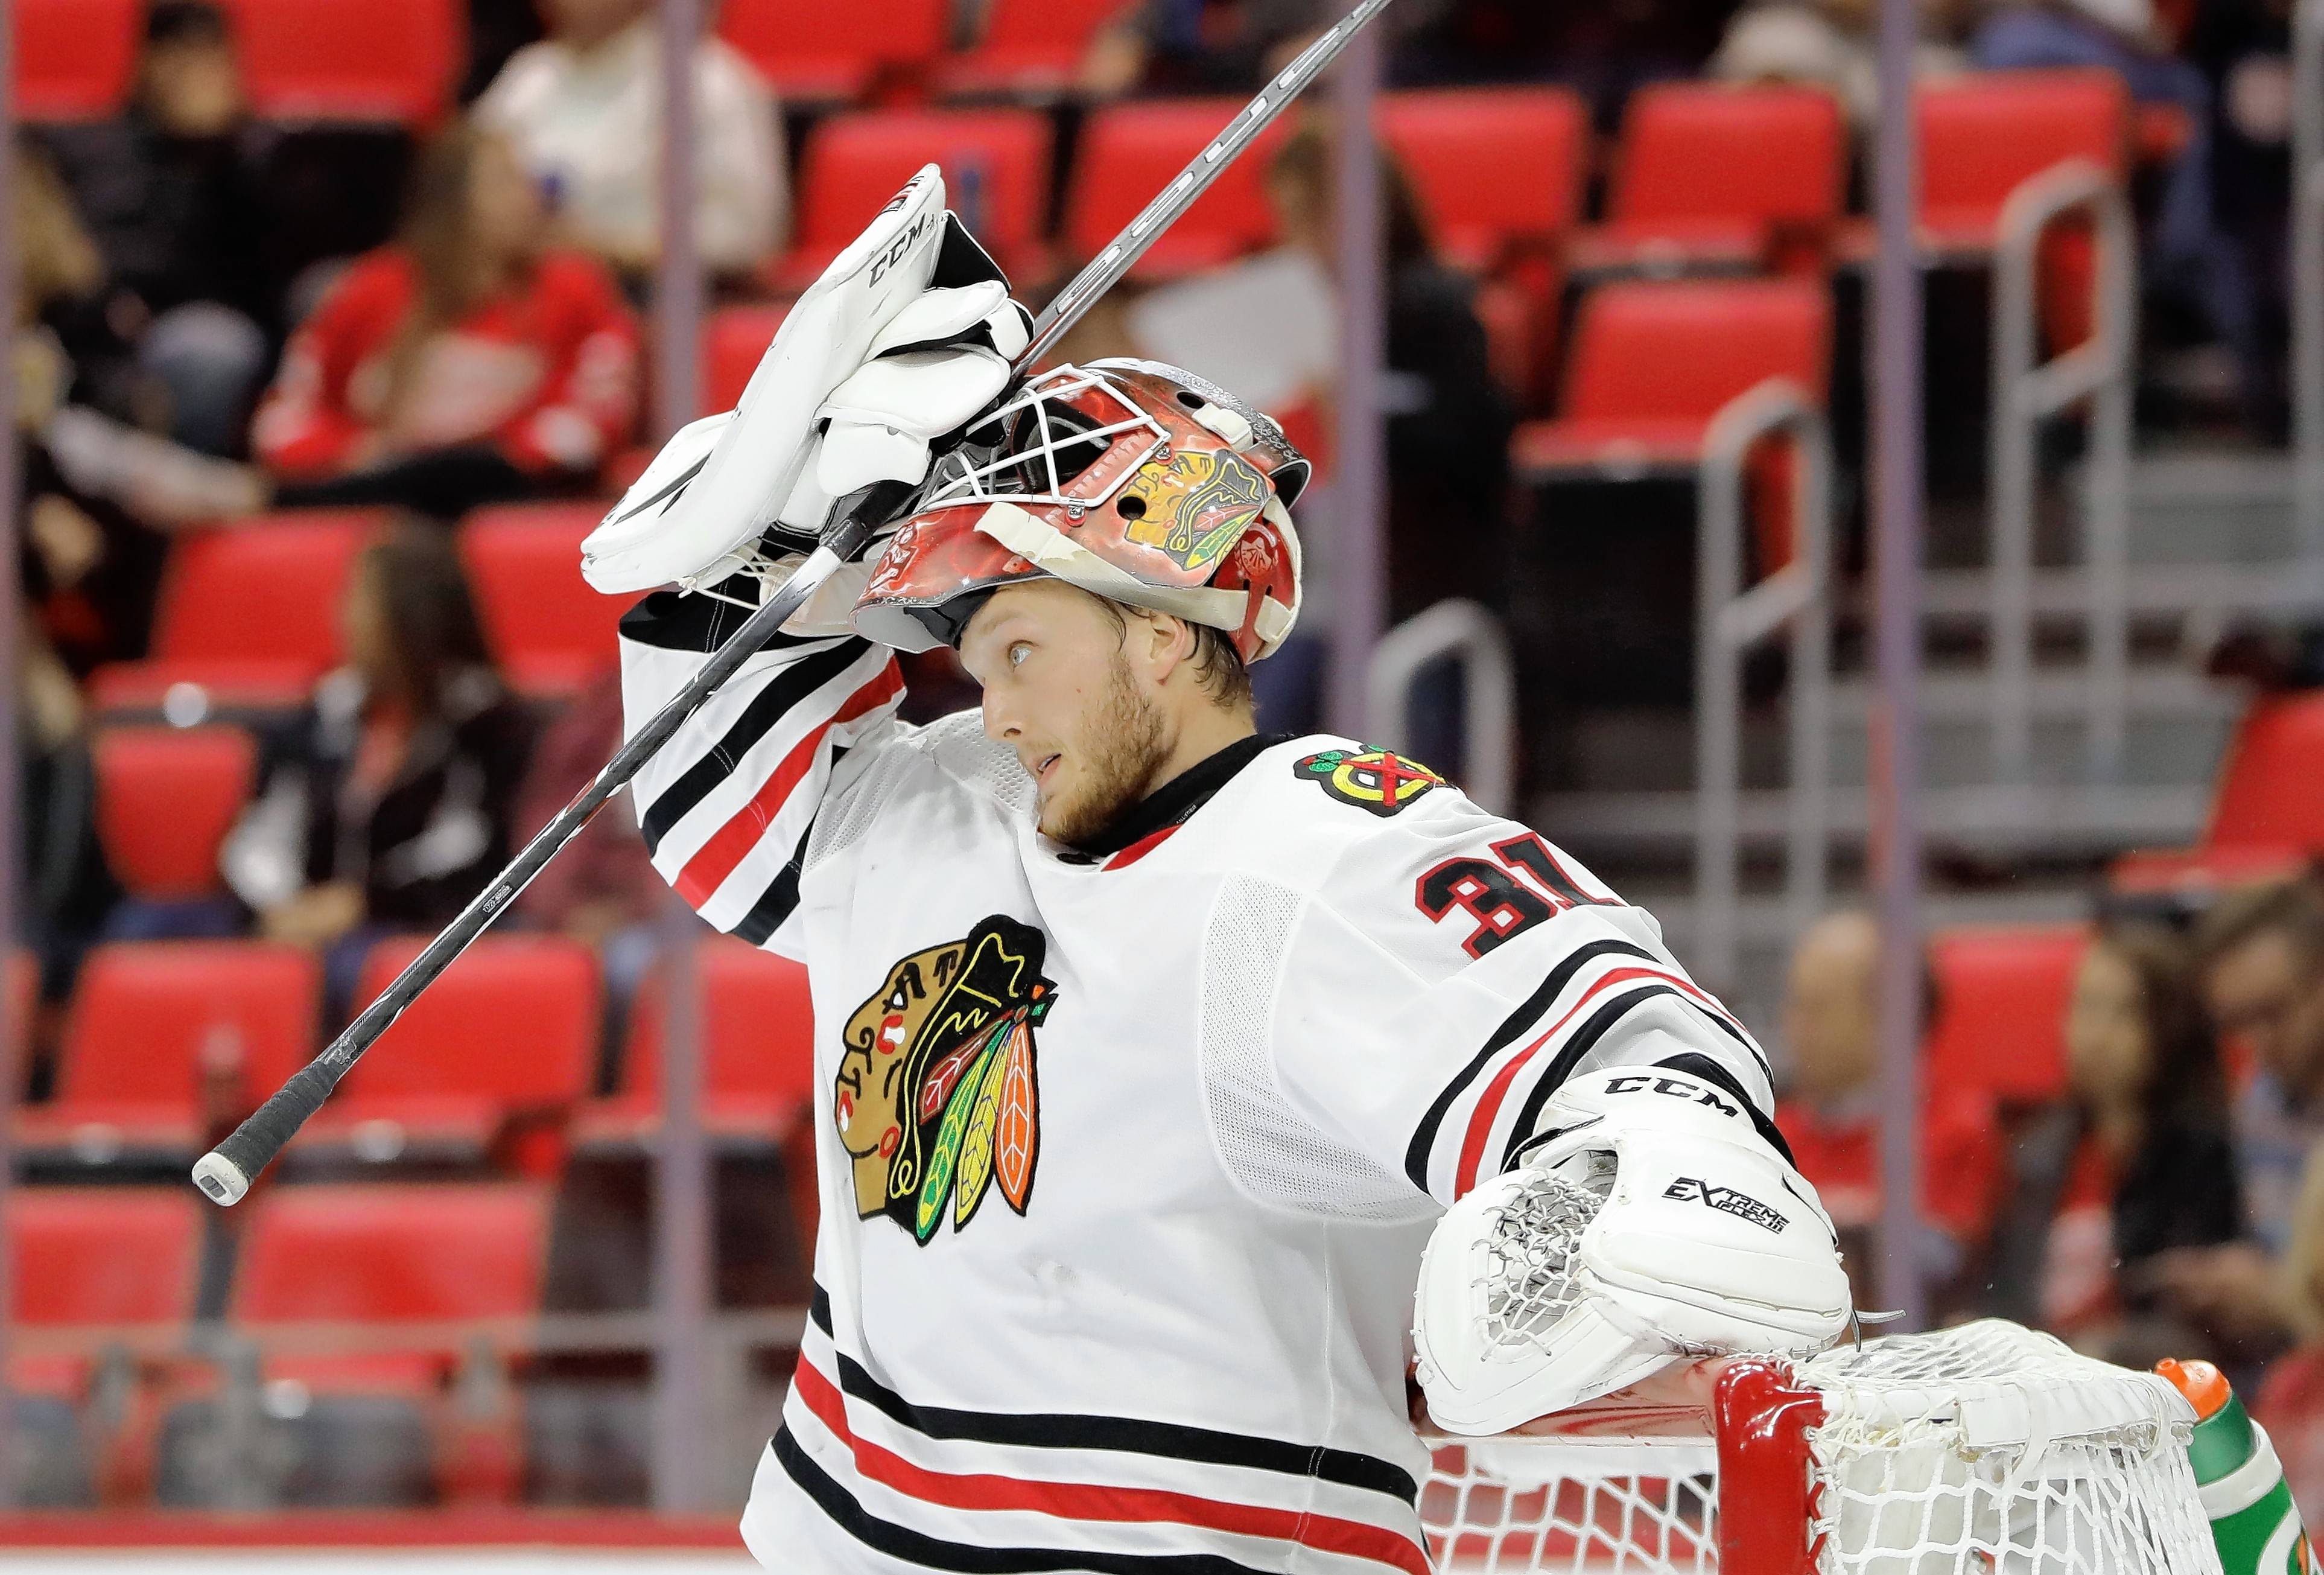 Chicago Blackhawks goalie Anton Forsberg (31) of Sweden adjusts his mask during the second period of an NHL hockey game against the Detroit Red Wings, Thursday, Sept. 28,2017, in Detroit. (AP Photo/Carlos Osorio)